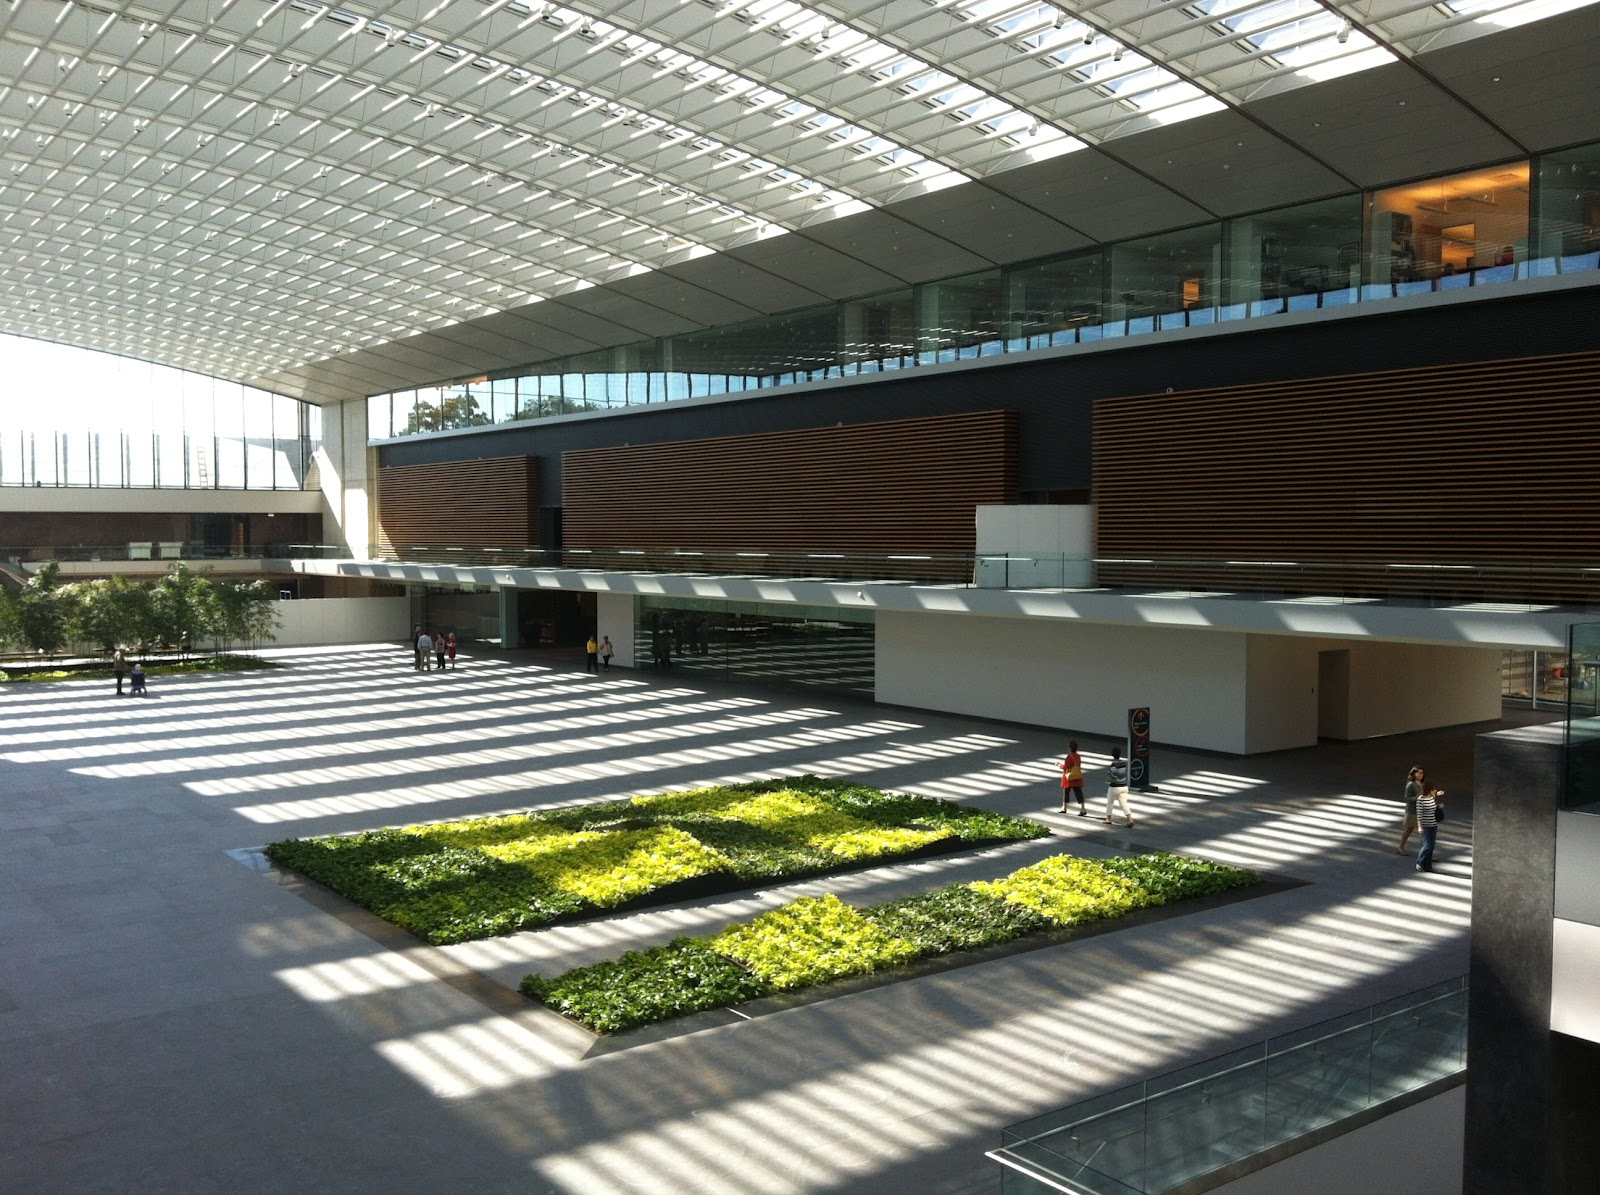 Cleveland Museum Of Art: Rafael Viñoly's New Atrium At The Cleveland Museum Of Art